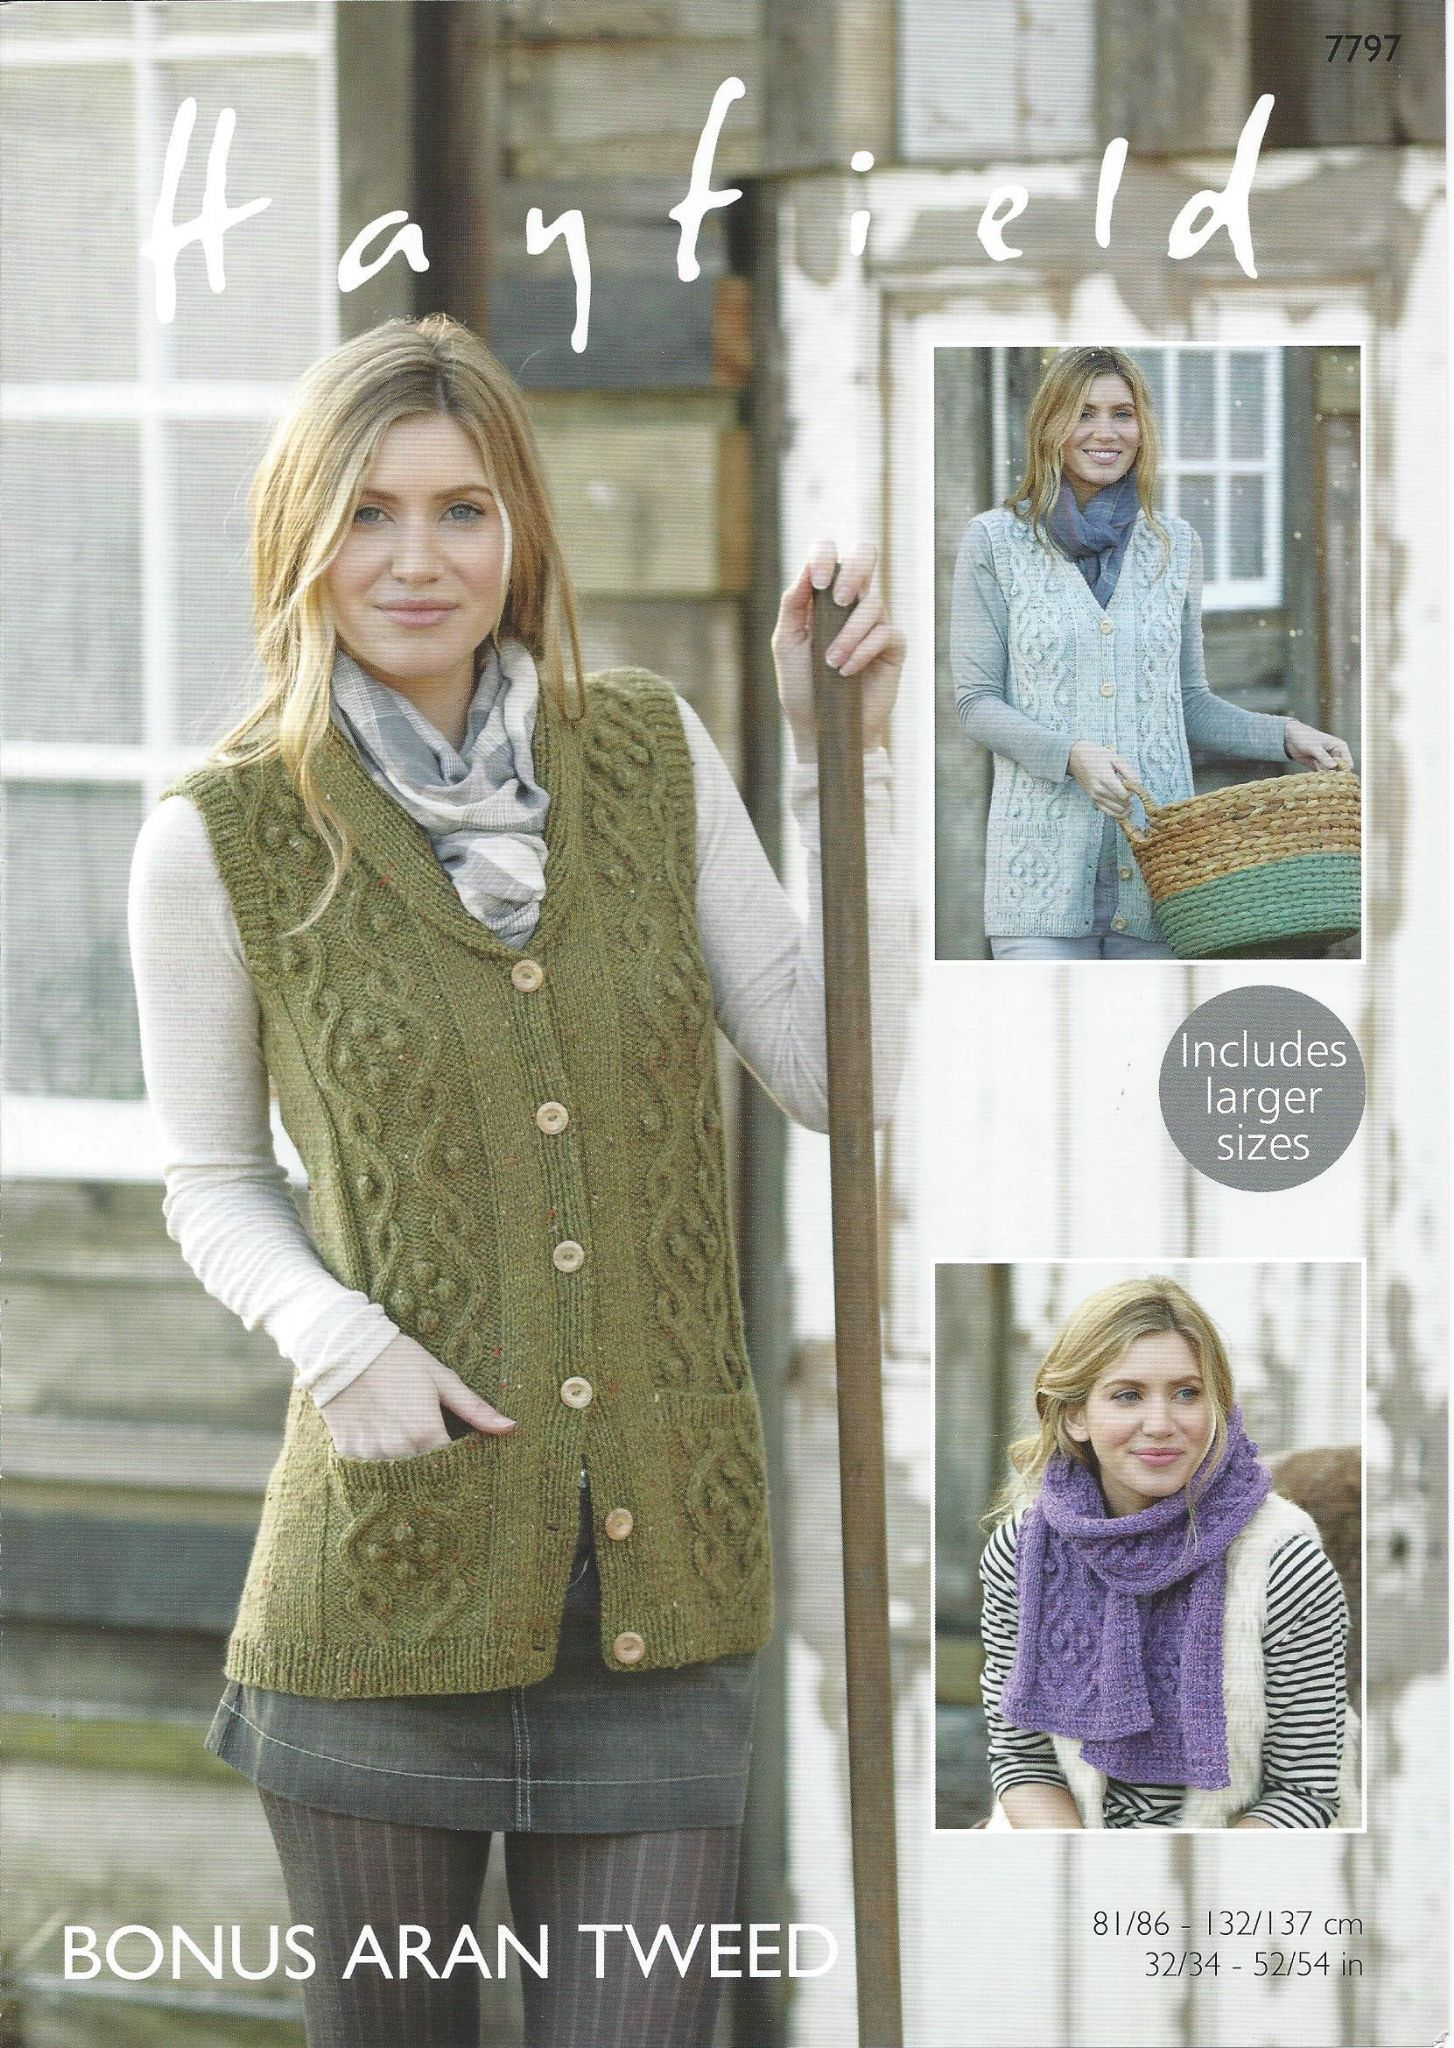 Hayfield Aran Knitting Pattern Books : Hayfield Bonus Aran Tweed - 7797 Waistcoats & Scarf ...